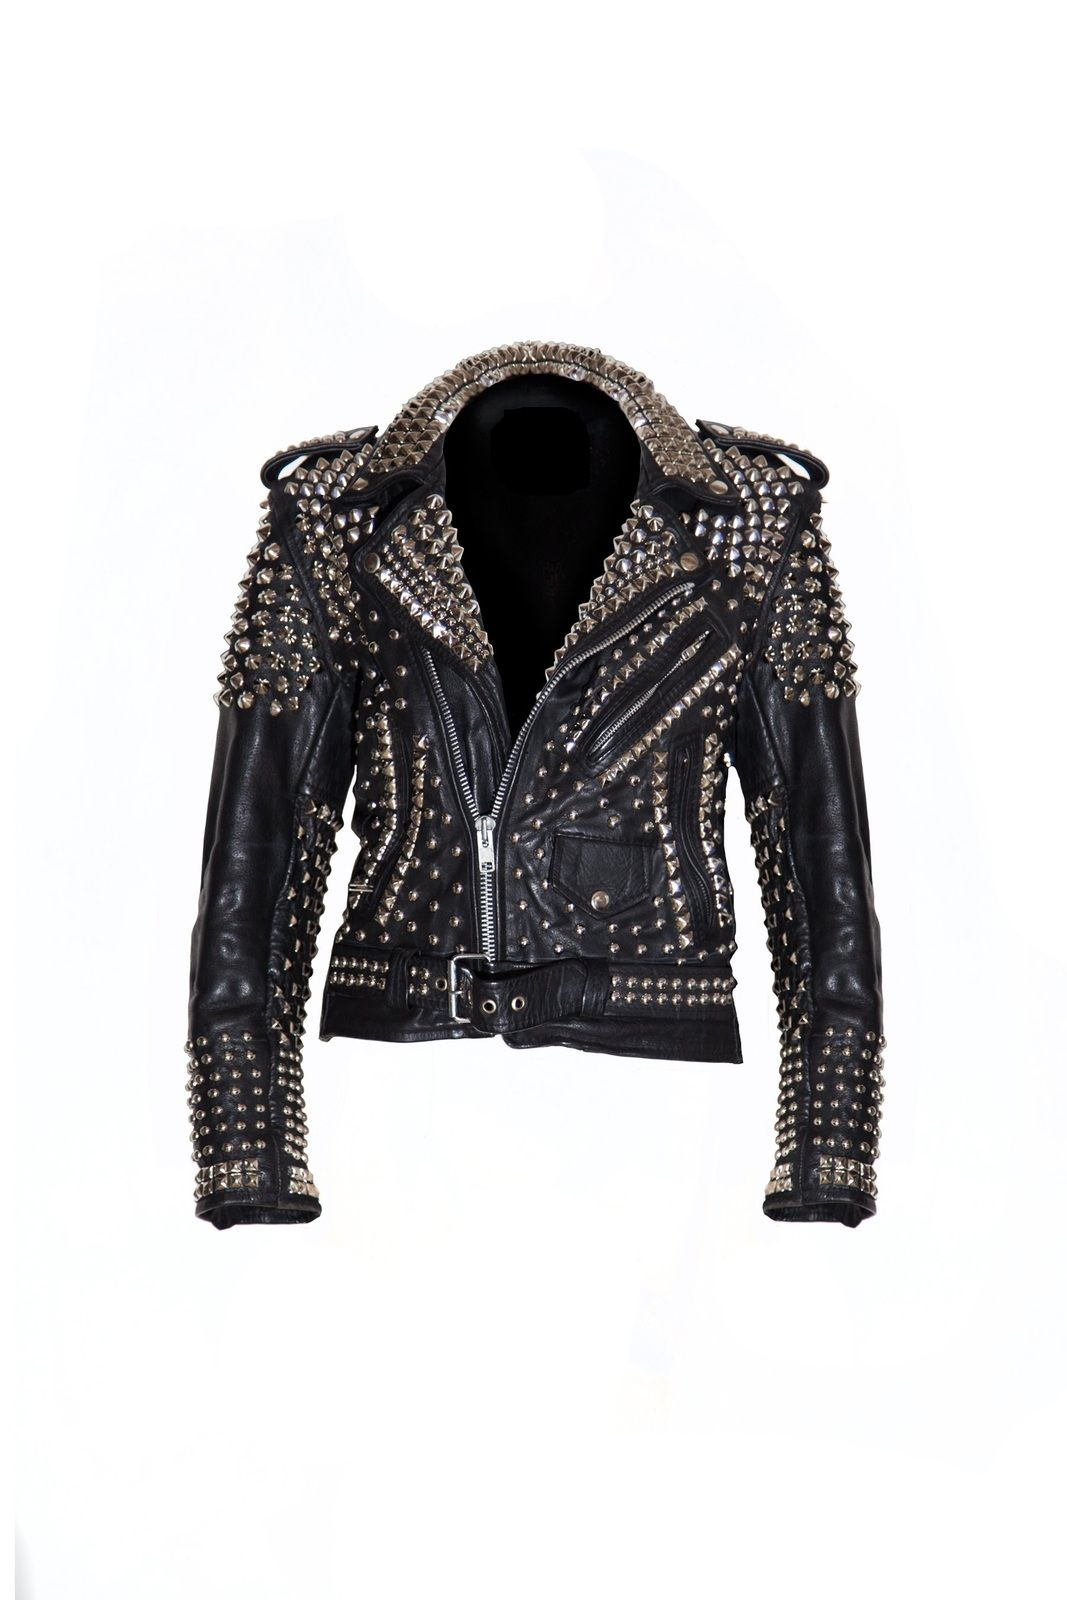 New Woman Black Punk Full Silver Studded Cowhide Leather Jacket All Sizes Coats Jackets Studded Leather Jacket Leather Jacket Leather Jacket Style